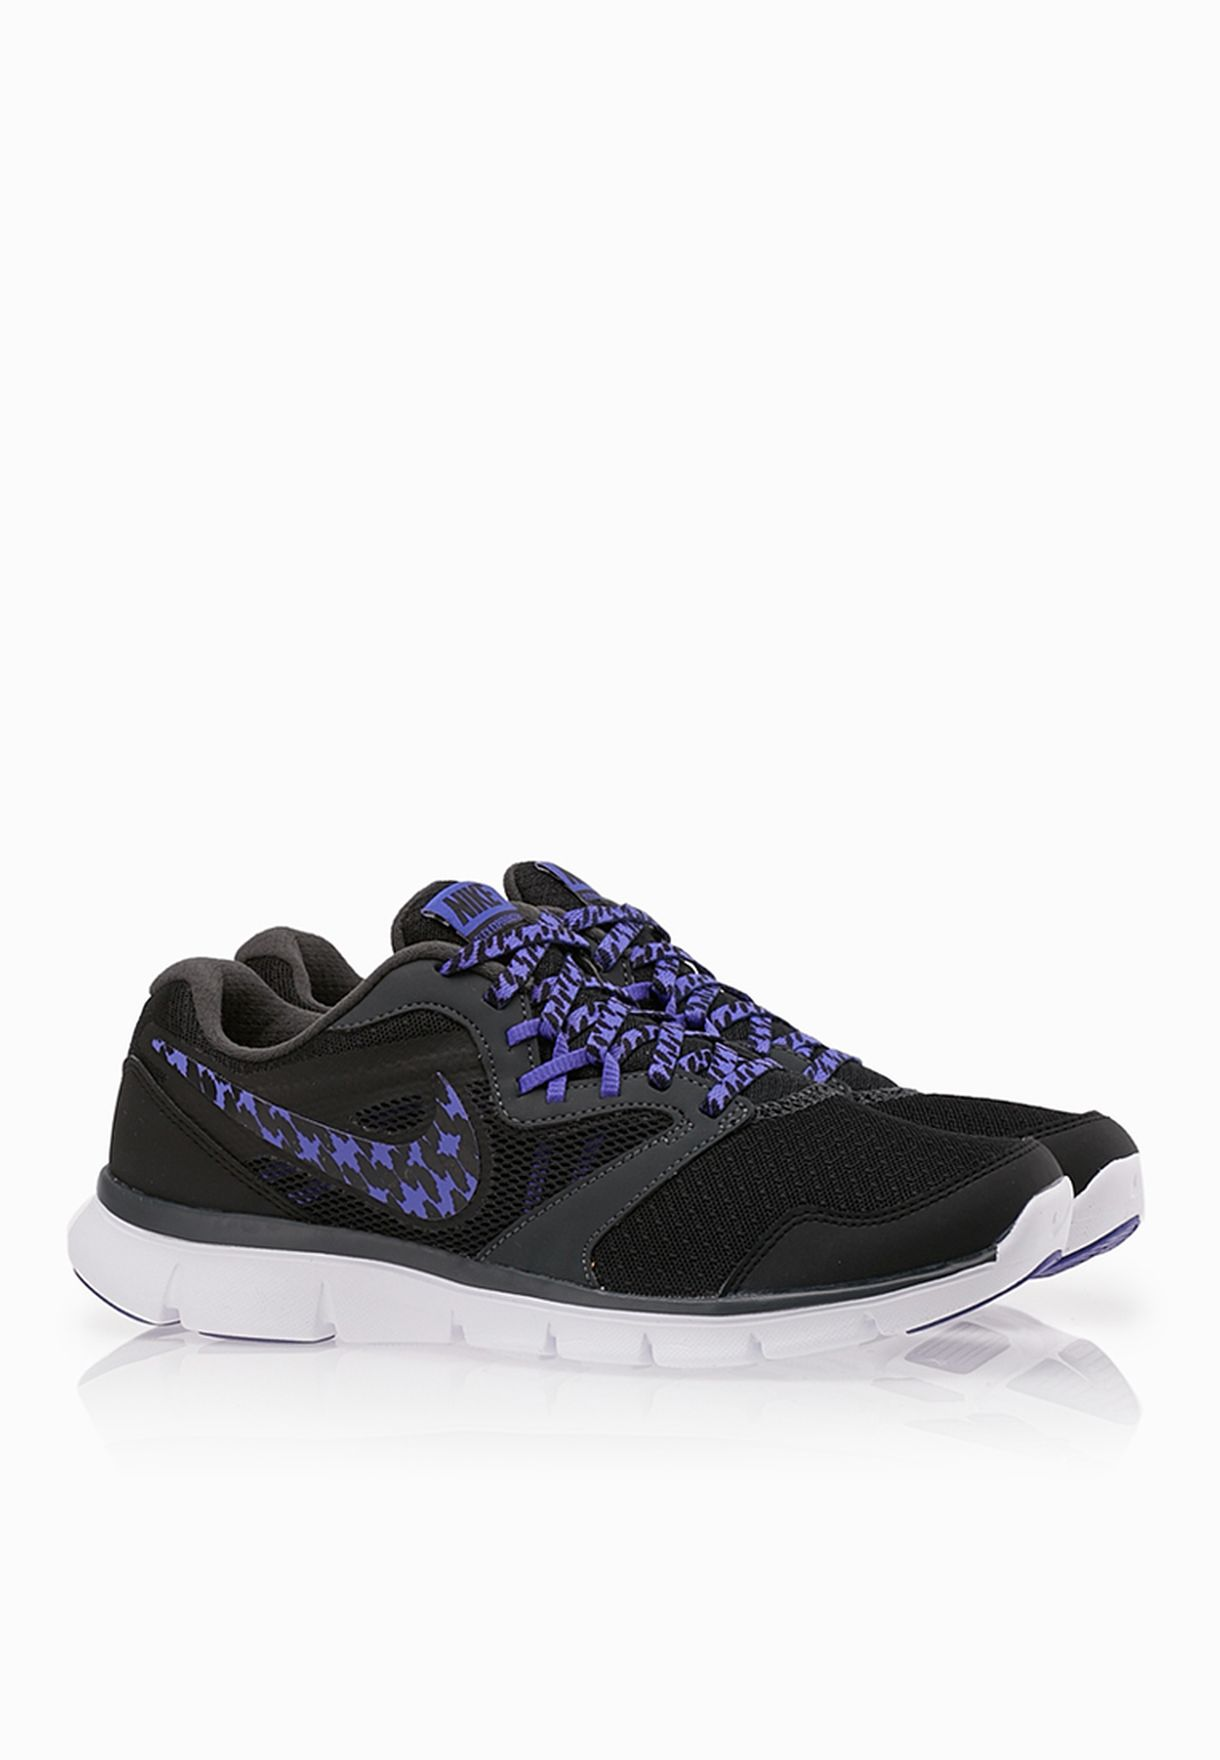 info for be286 f3dc5 Shop Nike black Flx Experience Rn 3 Msl 652858-019 for Women in ...